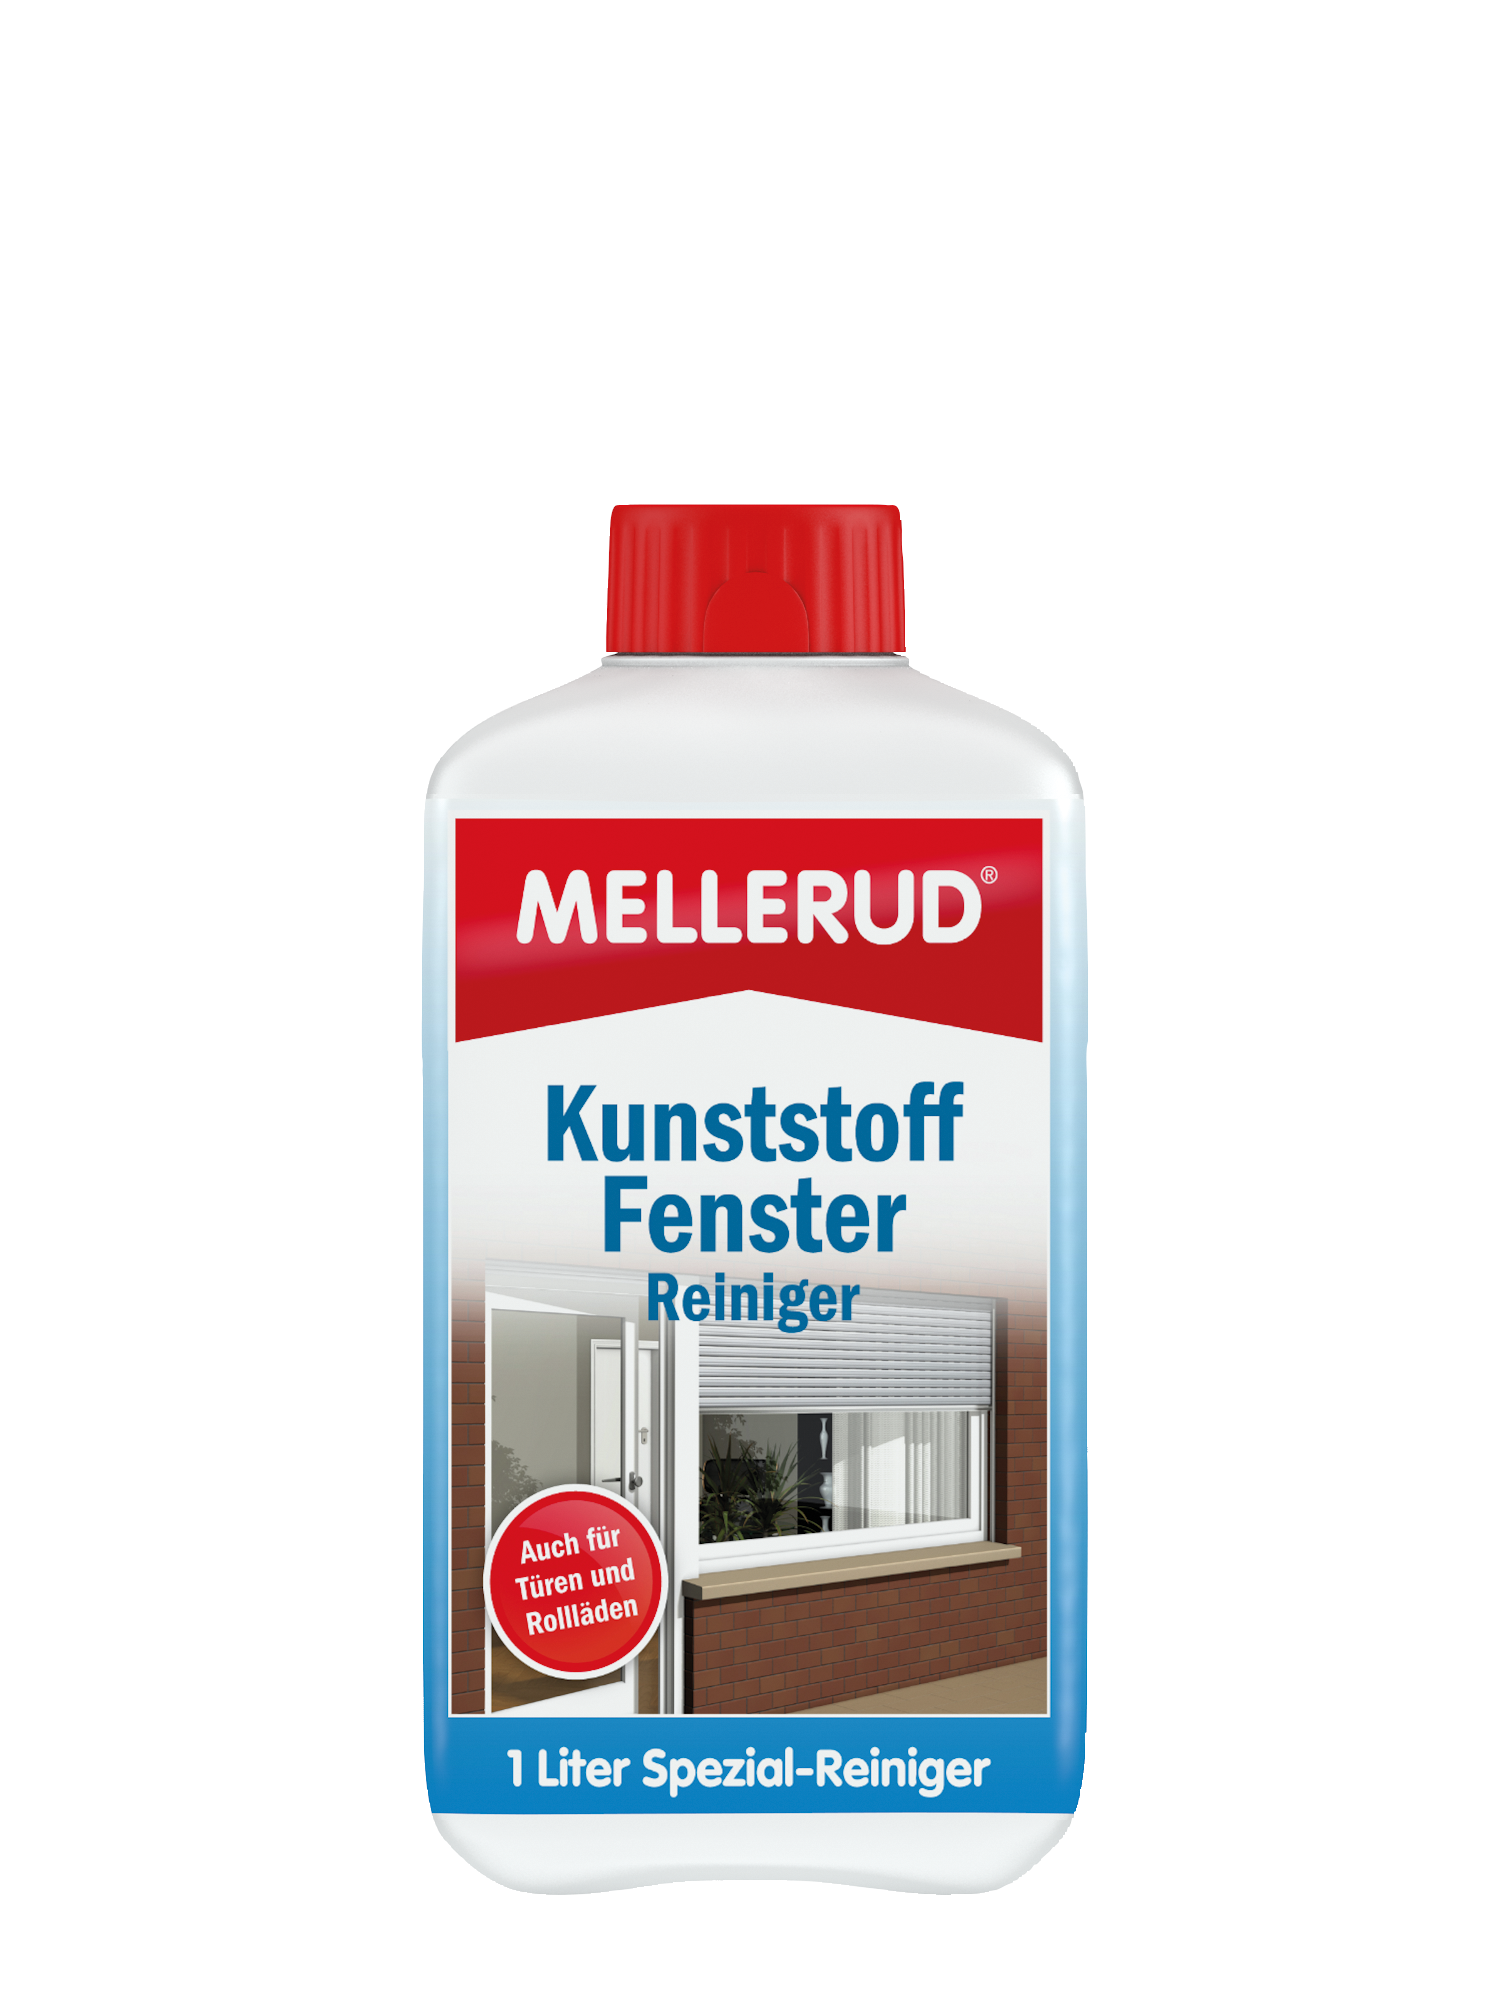 kunststoff fenster reiniger mellerud chemie gmbh oberfl chenreiniger reinigungsmittel. Black Bedroom Furniture Sets. Home Design Ideas